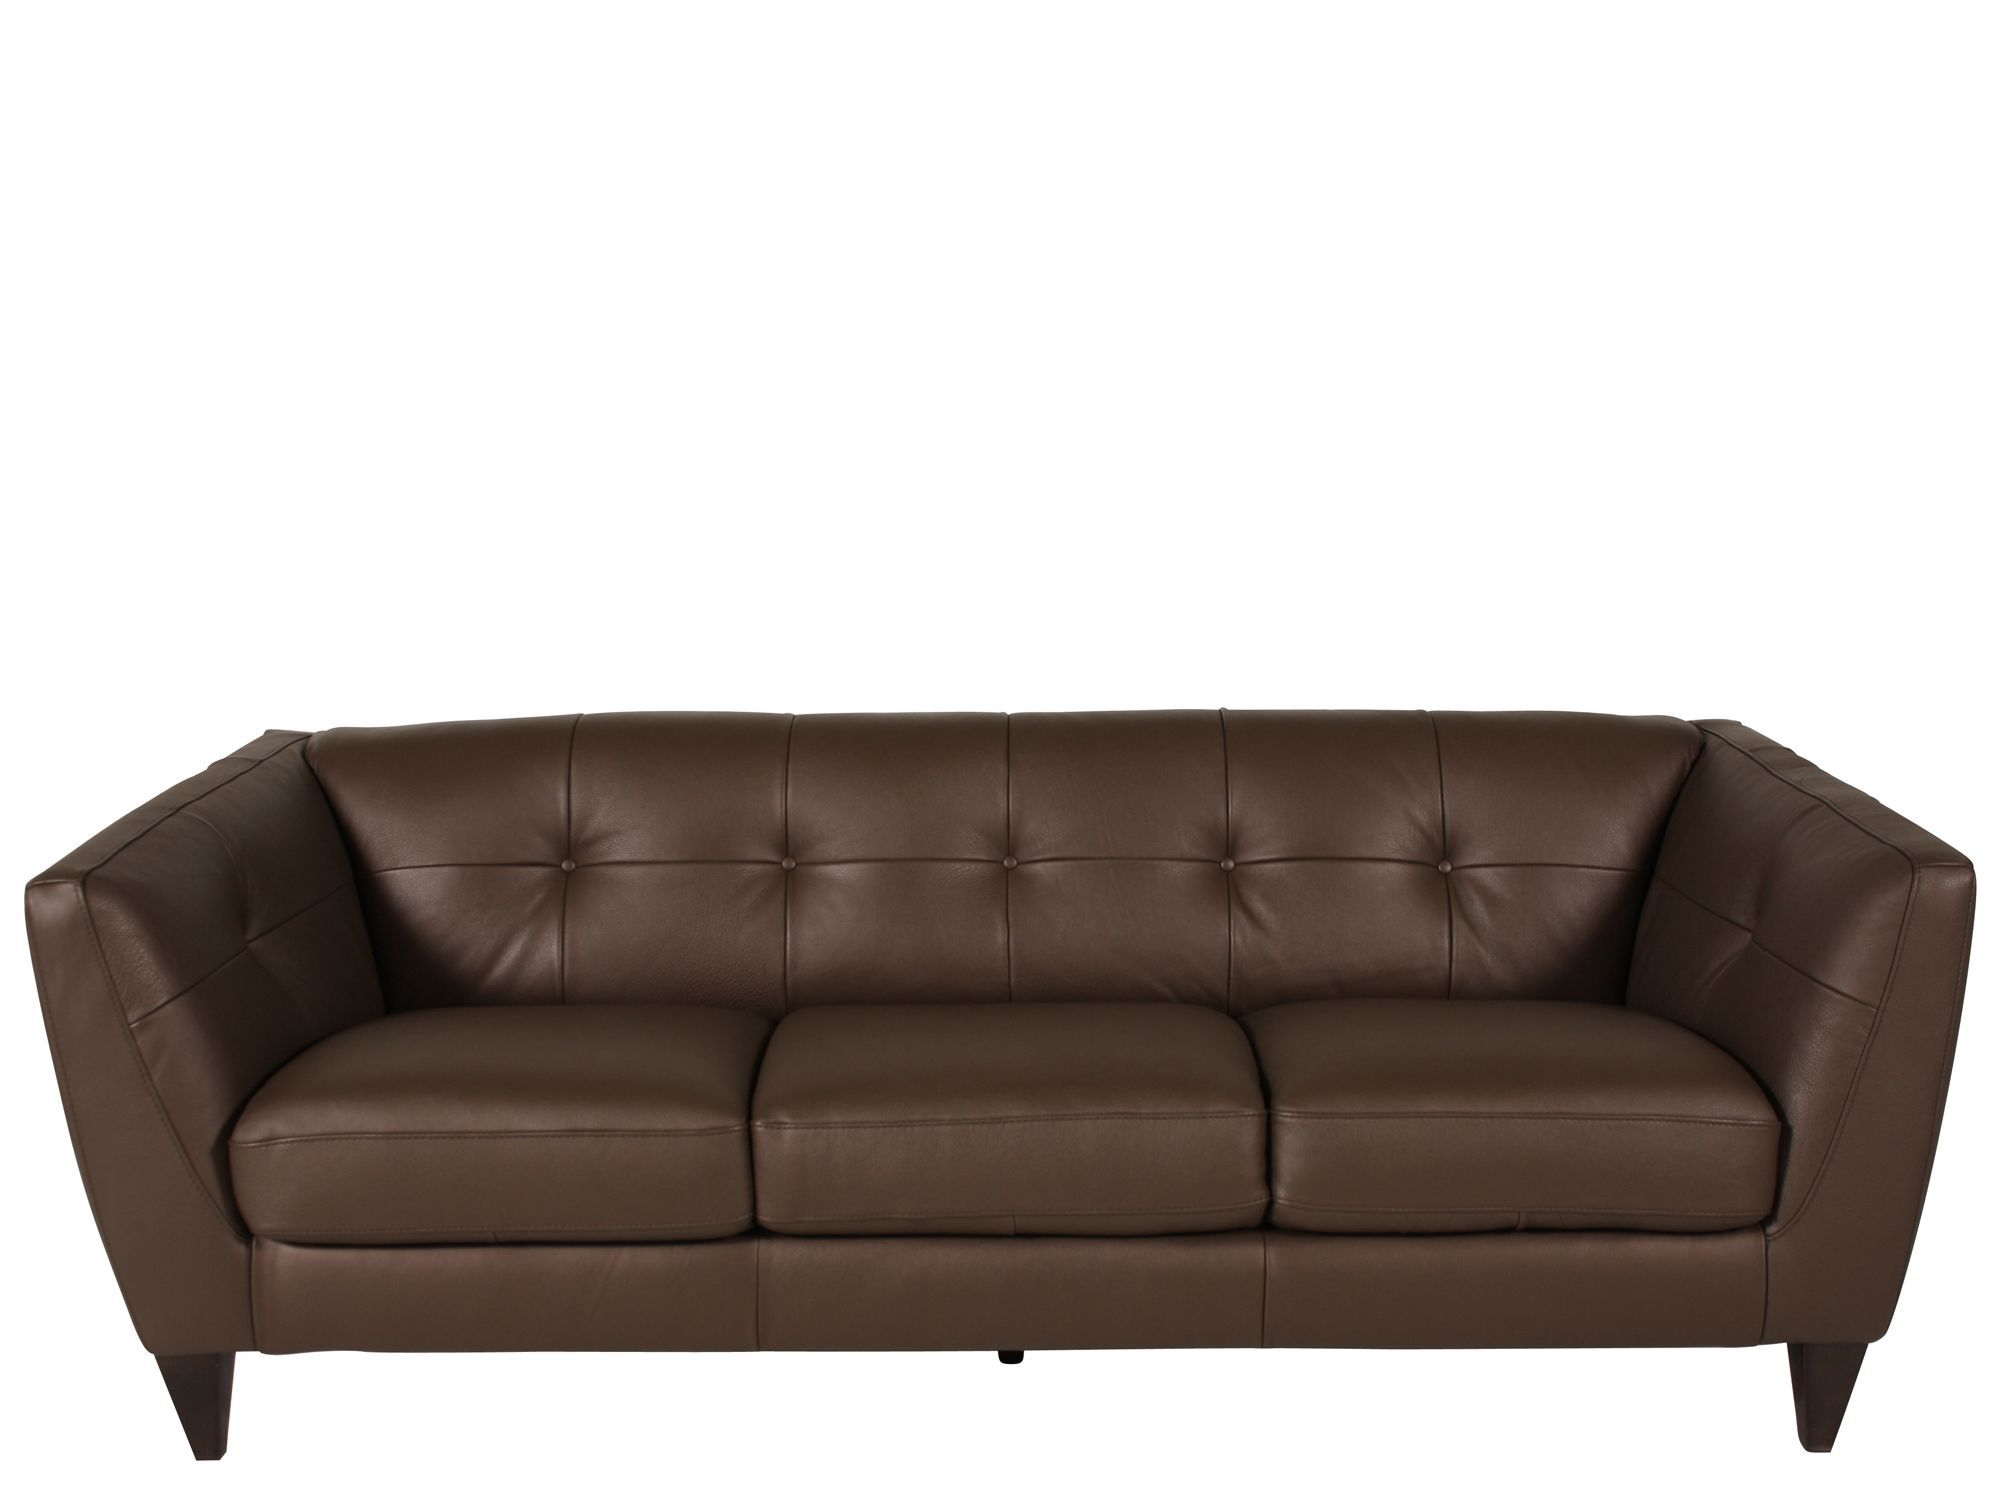 Natuzzi Mushroom Leather Sofa